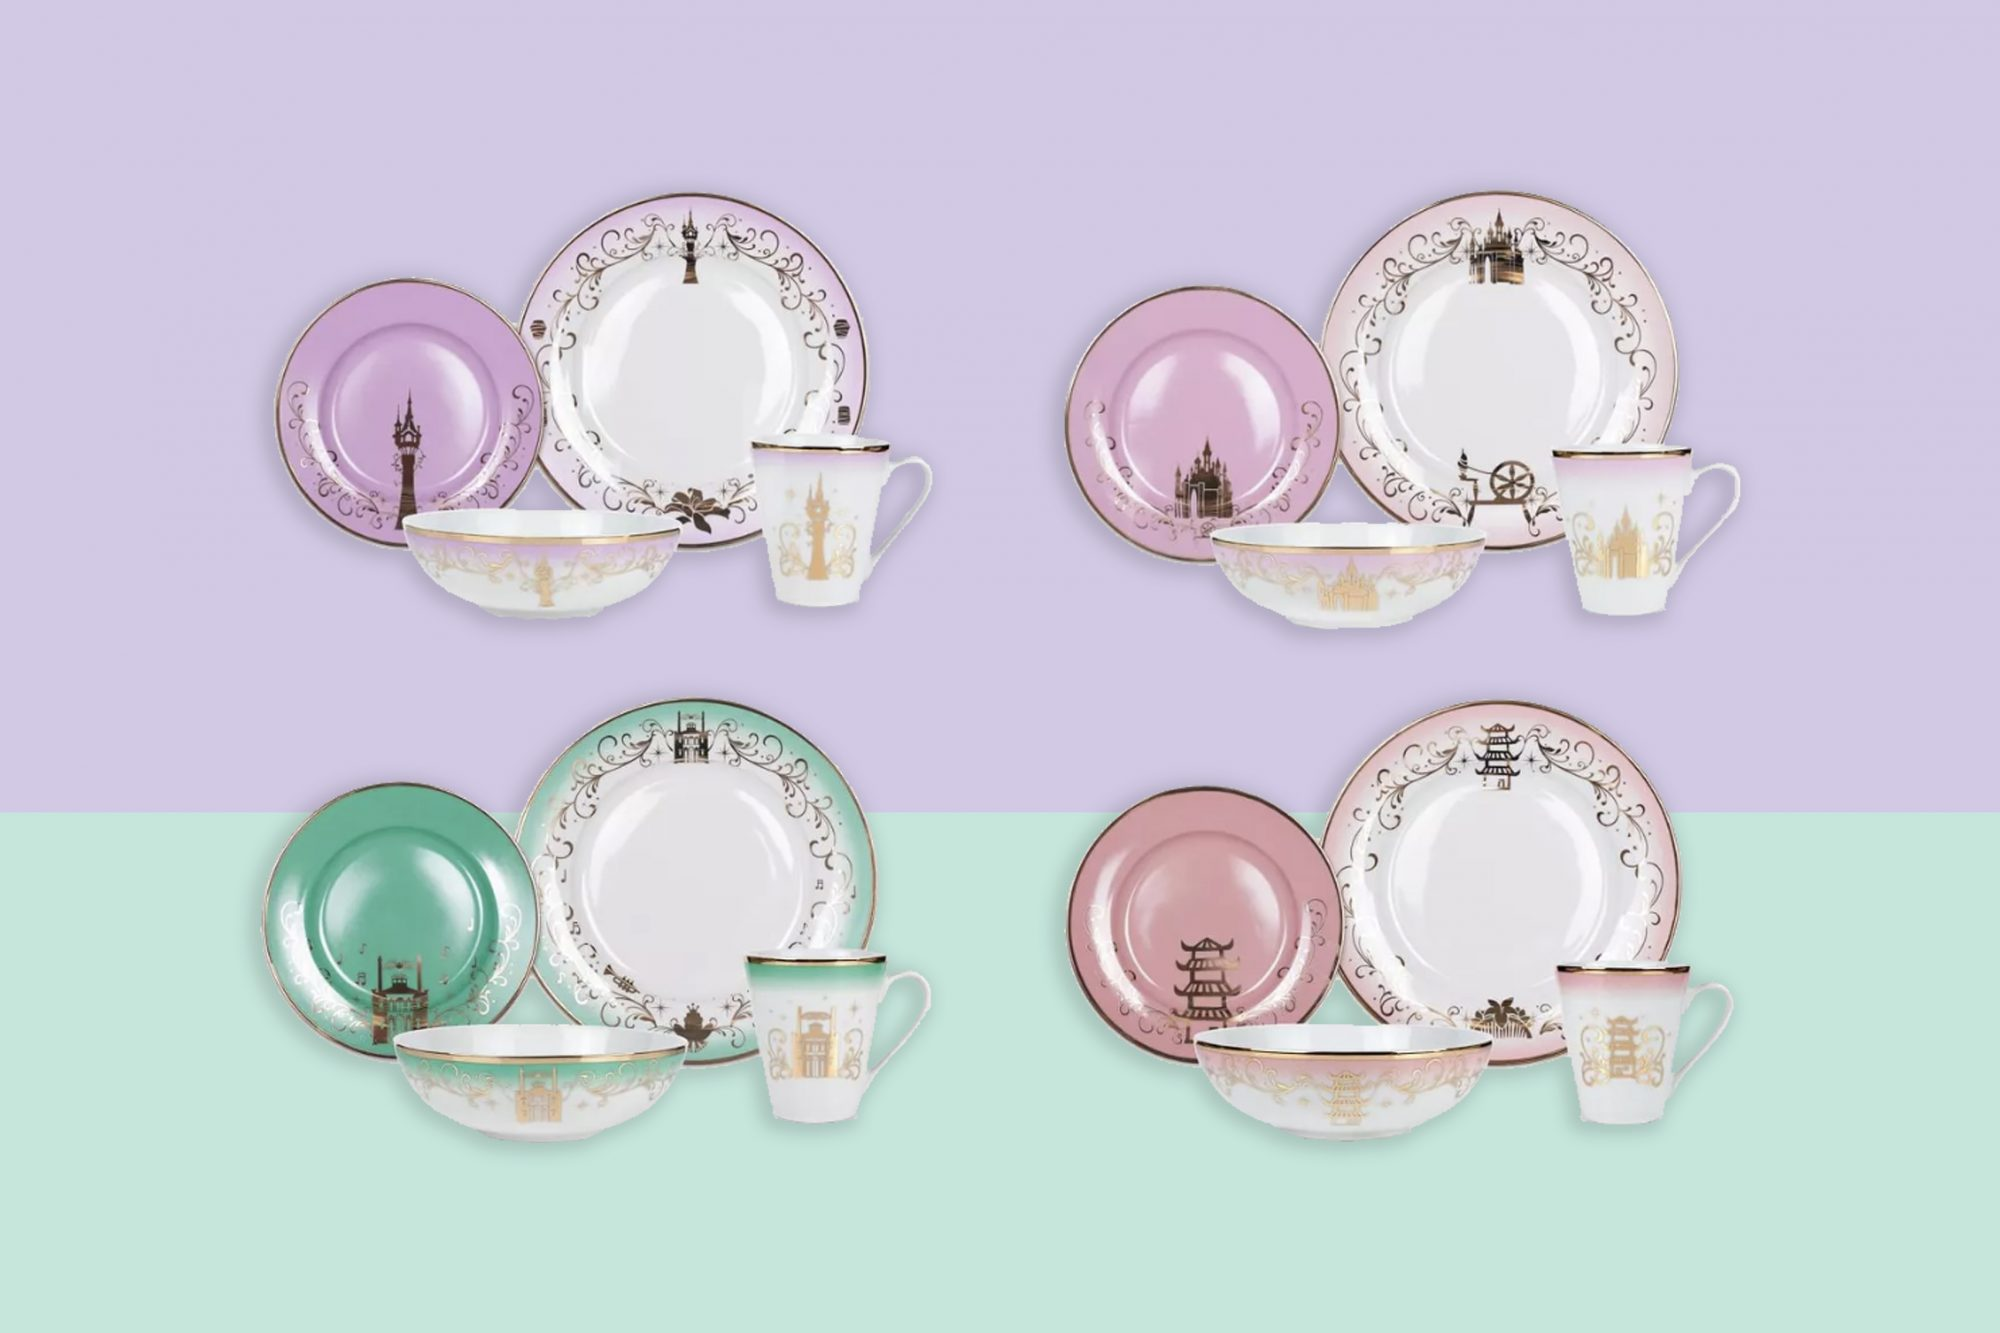 Target new Disney princess dinnerware sets